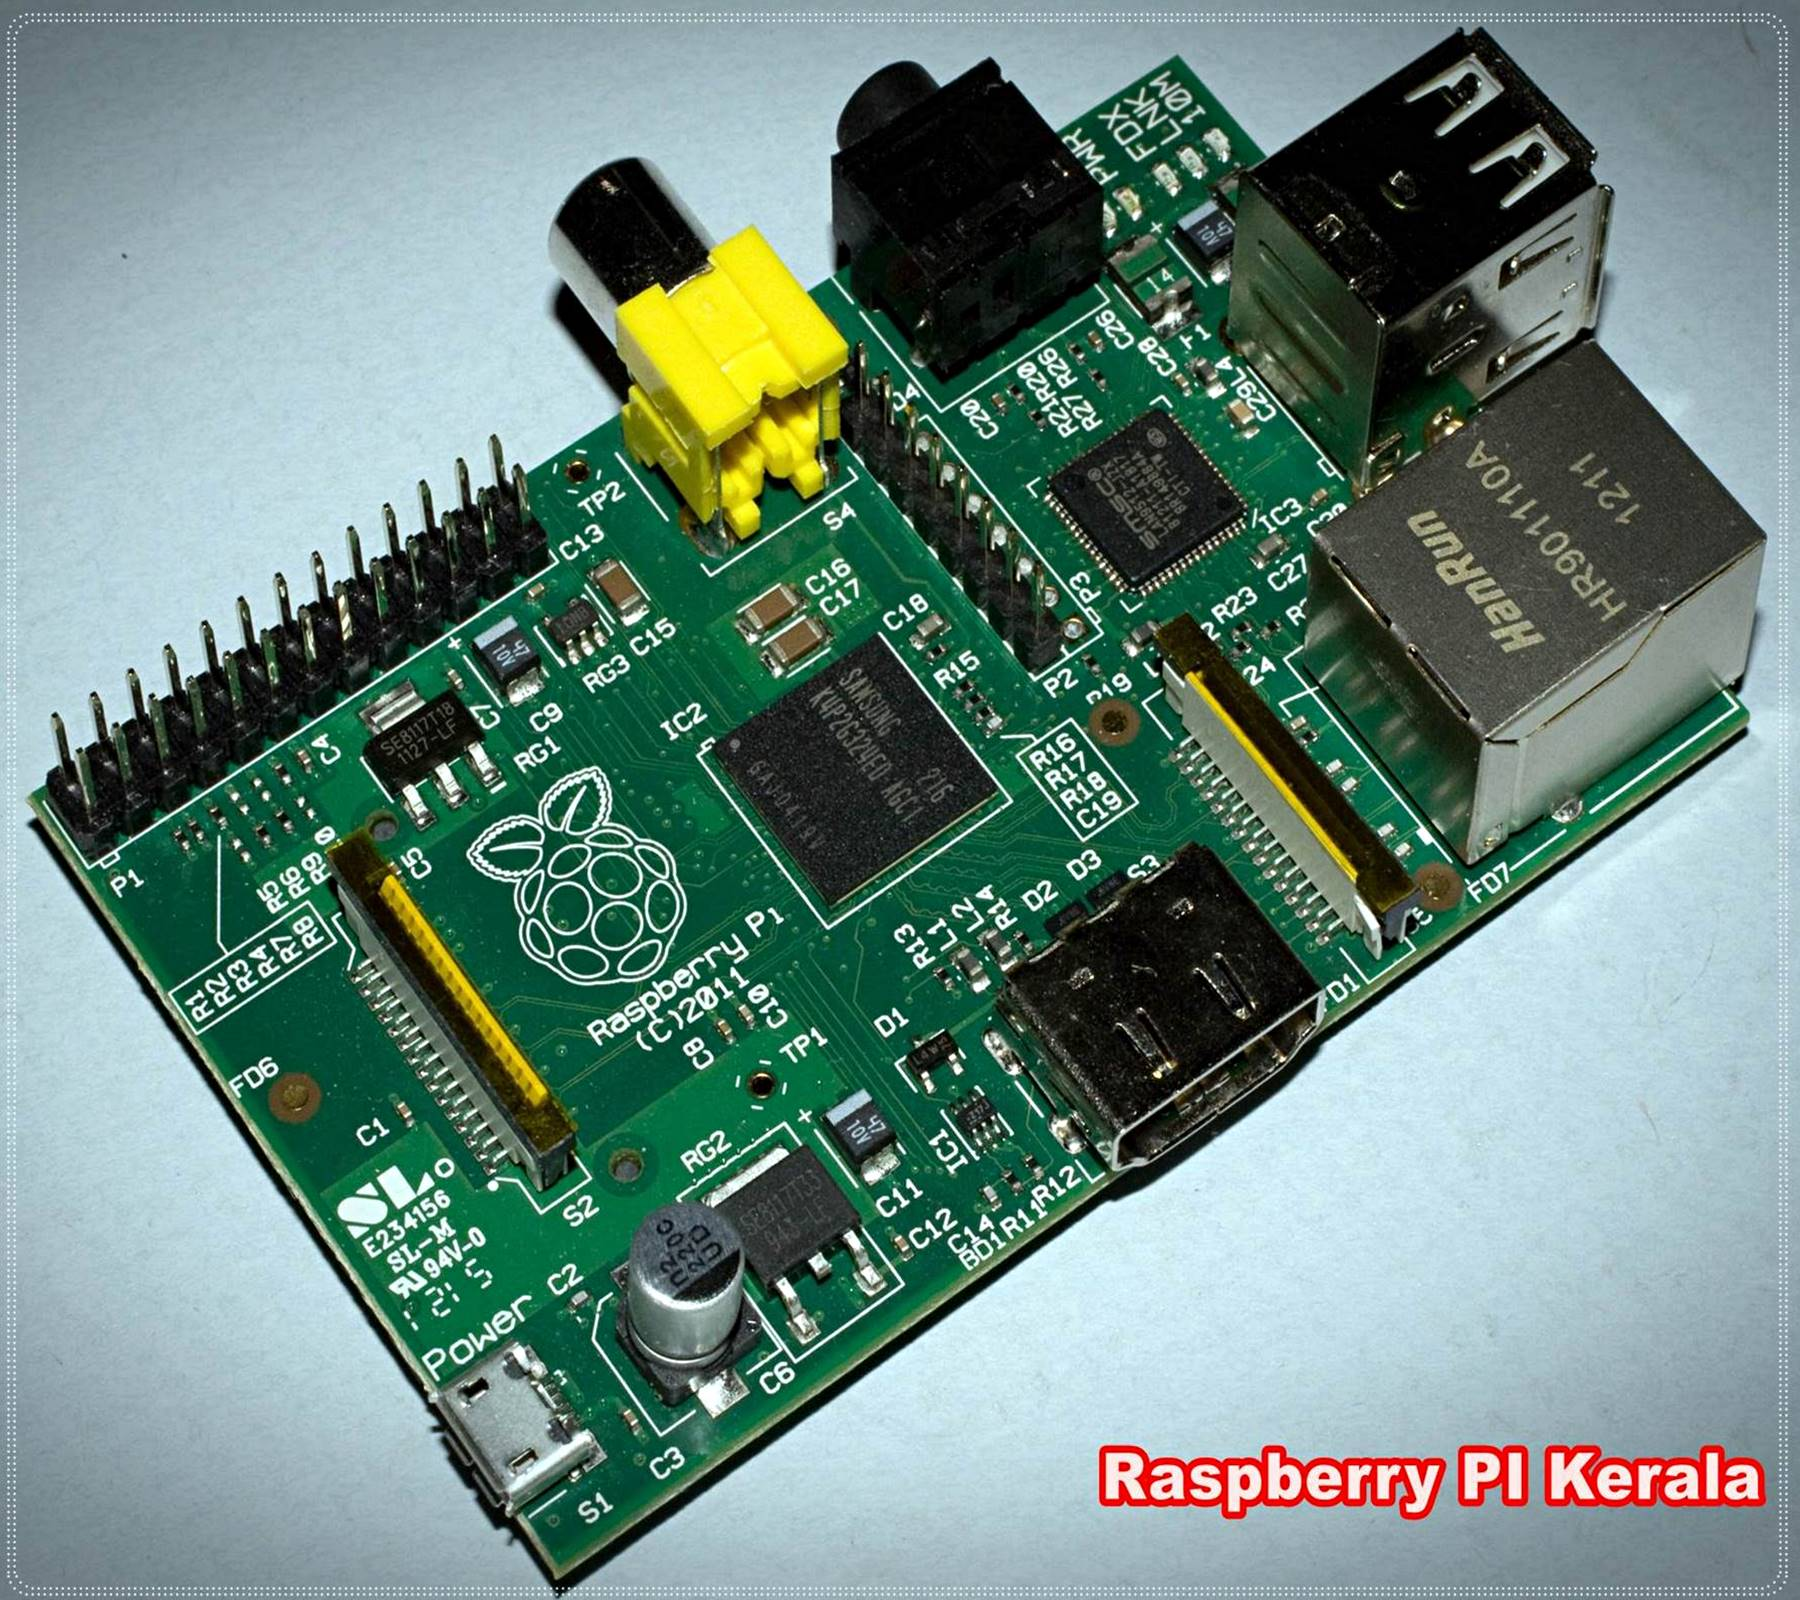 FireFox OS on Raspberry Pi Board | Vigneshwer Dhinakaran